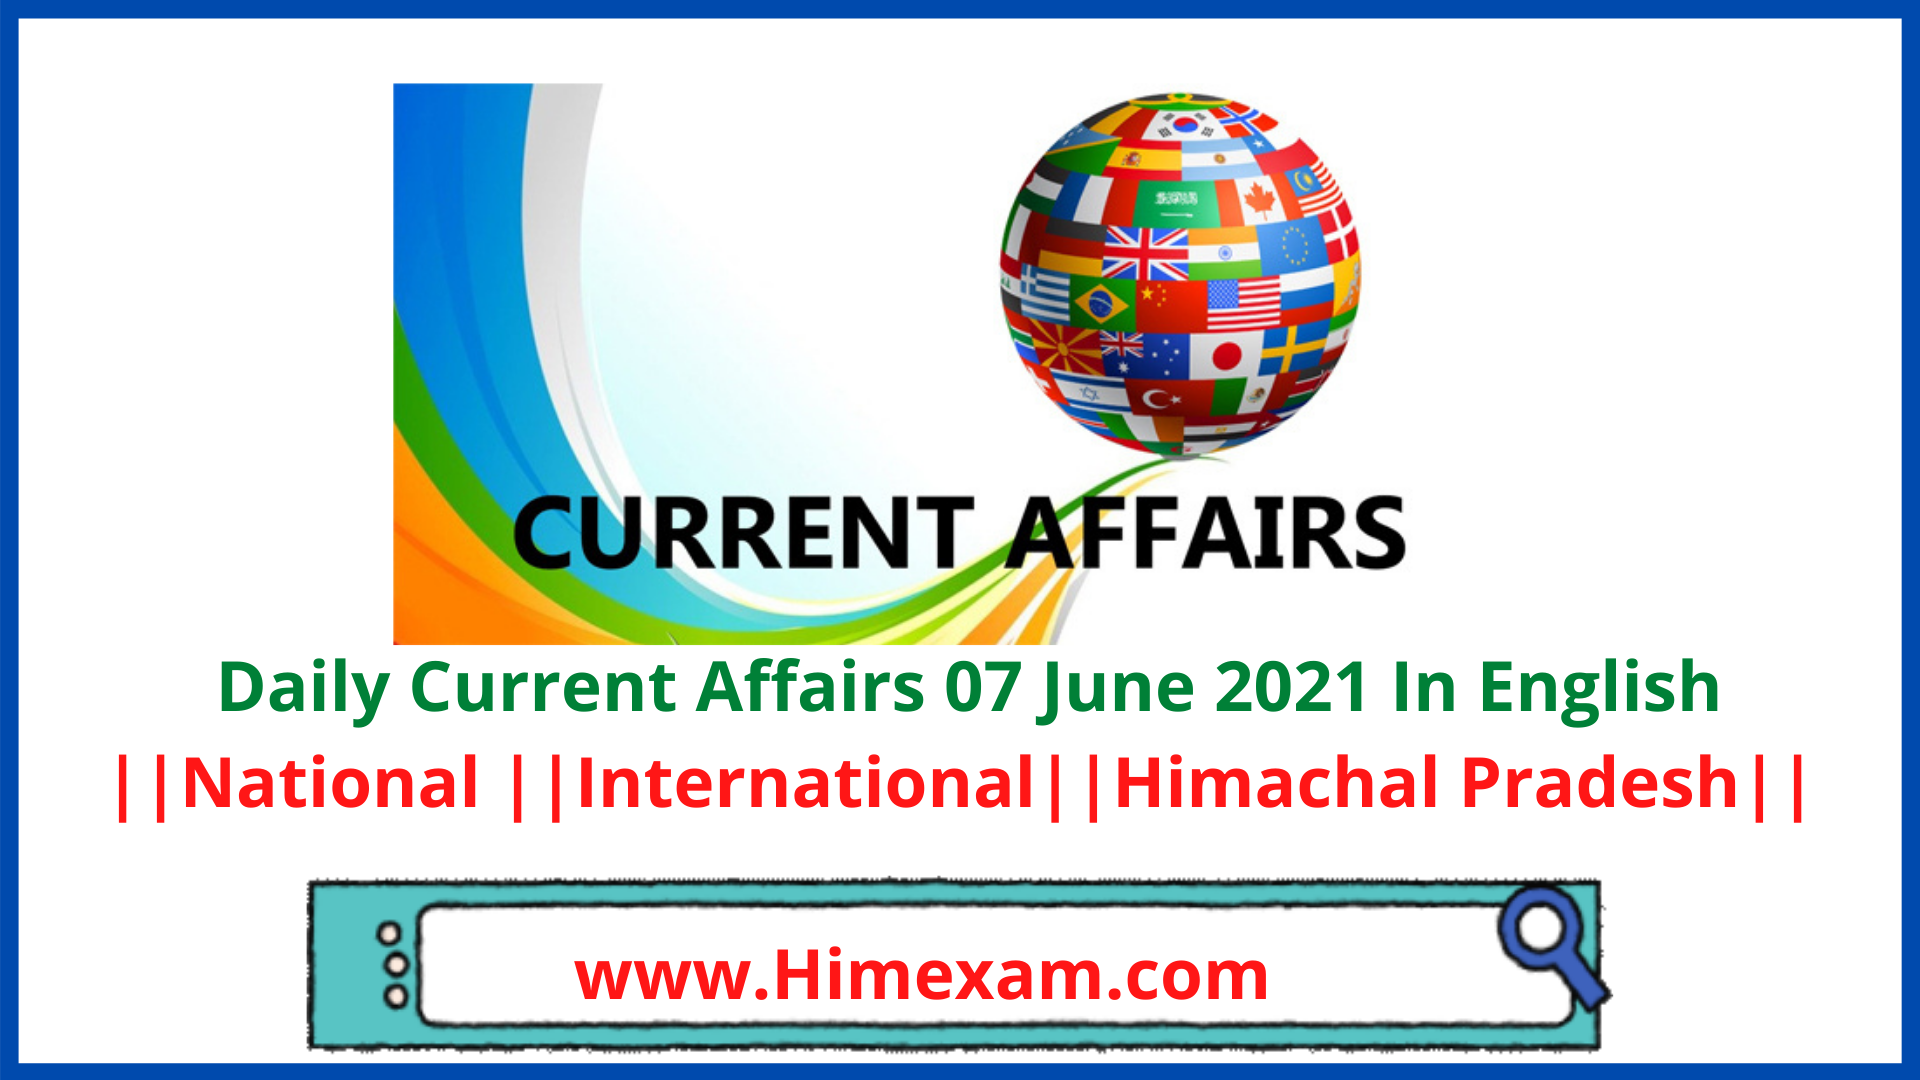 Daily Current Affairs 07 June 2021 In English